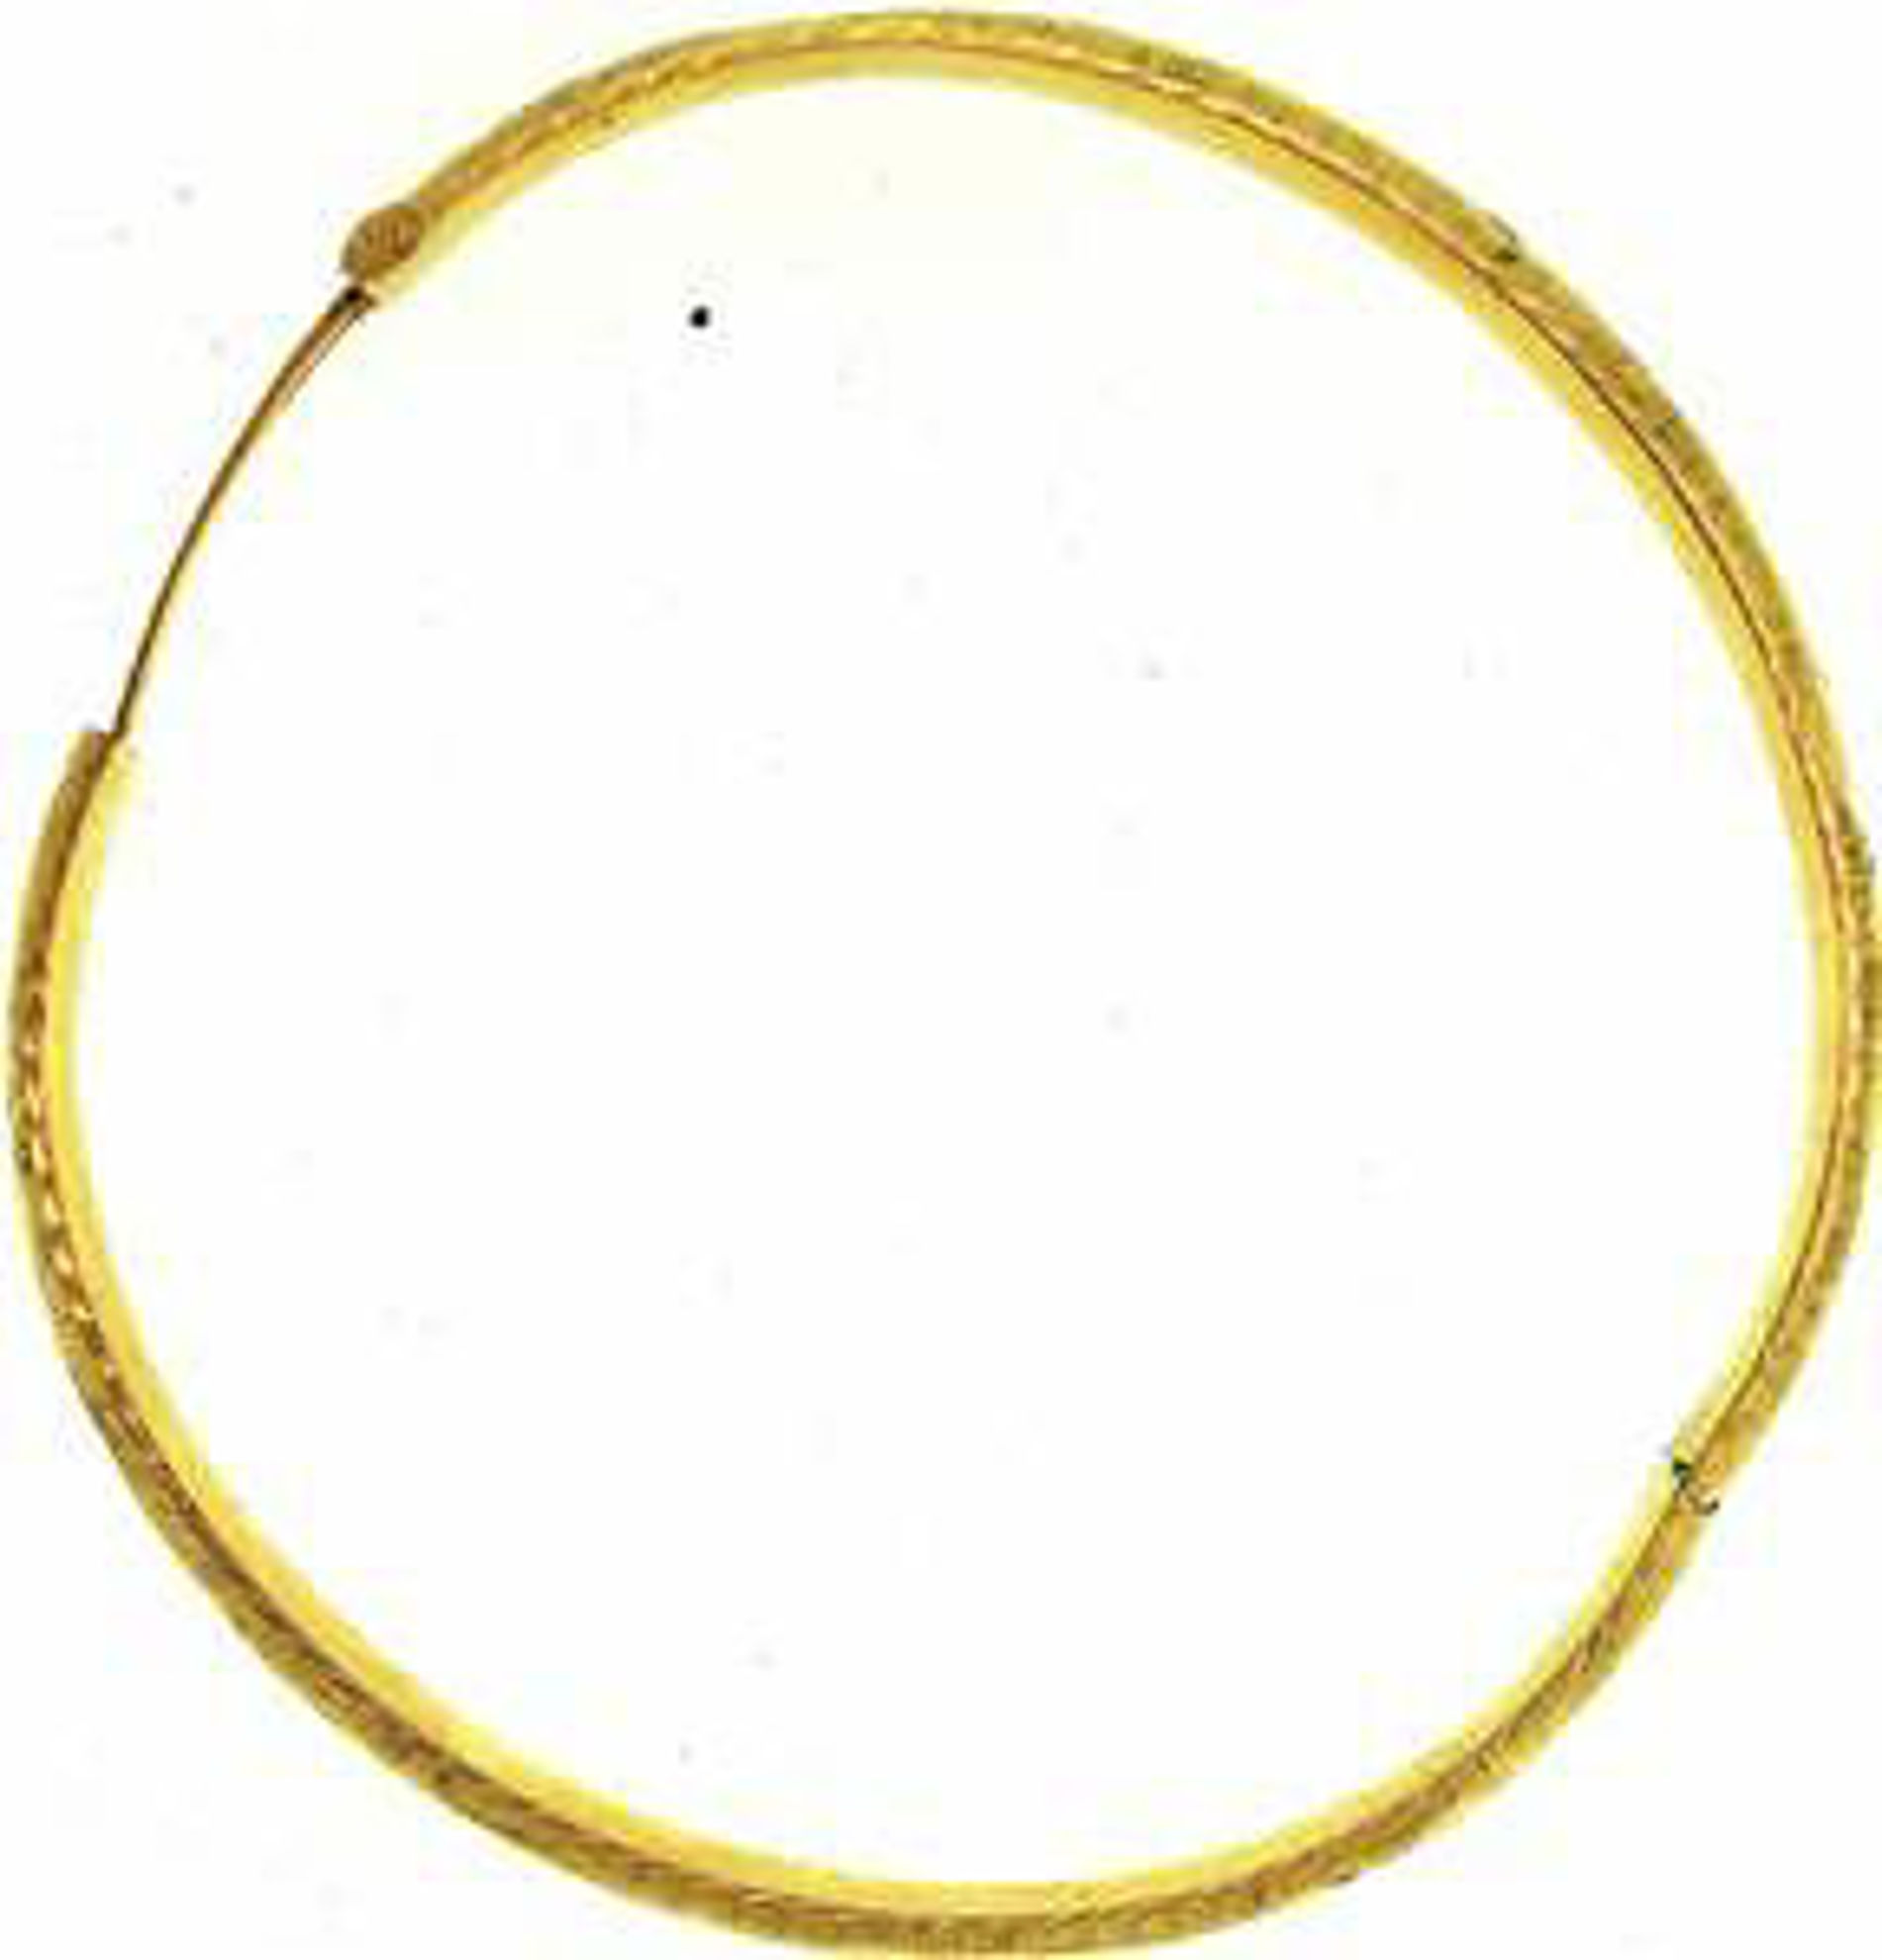 Picture of Bangle Bracelets 14kt-3.6 DWT, 5.6 Grams